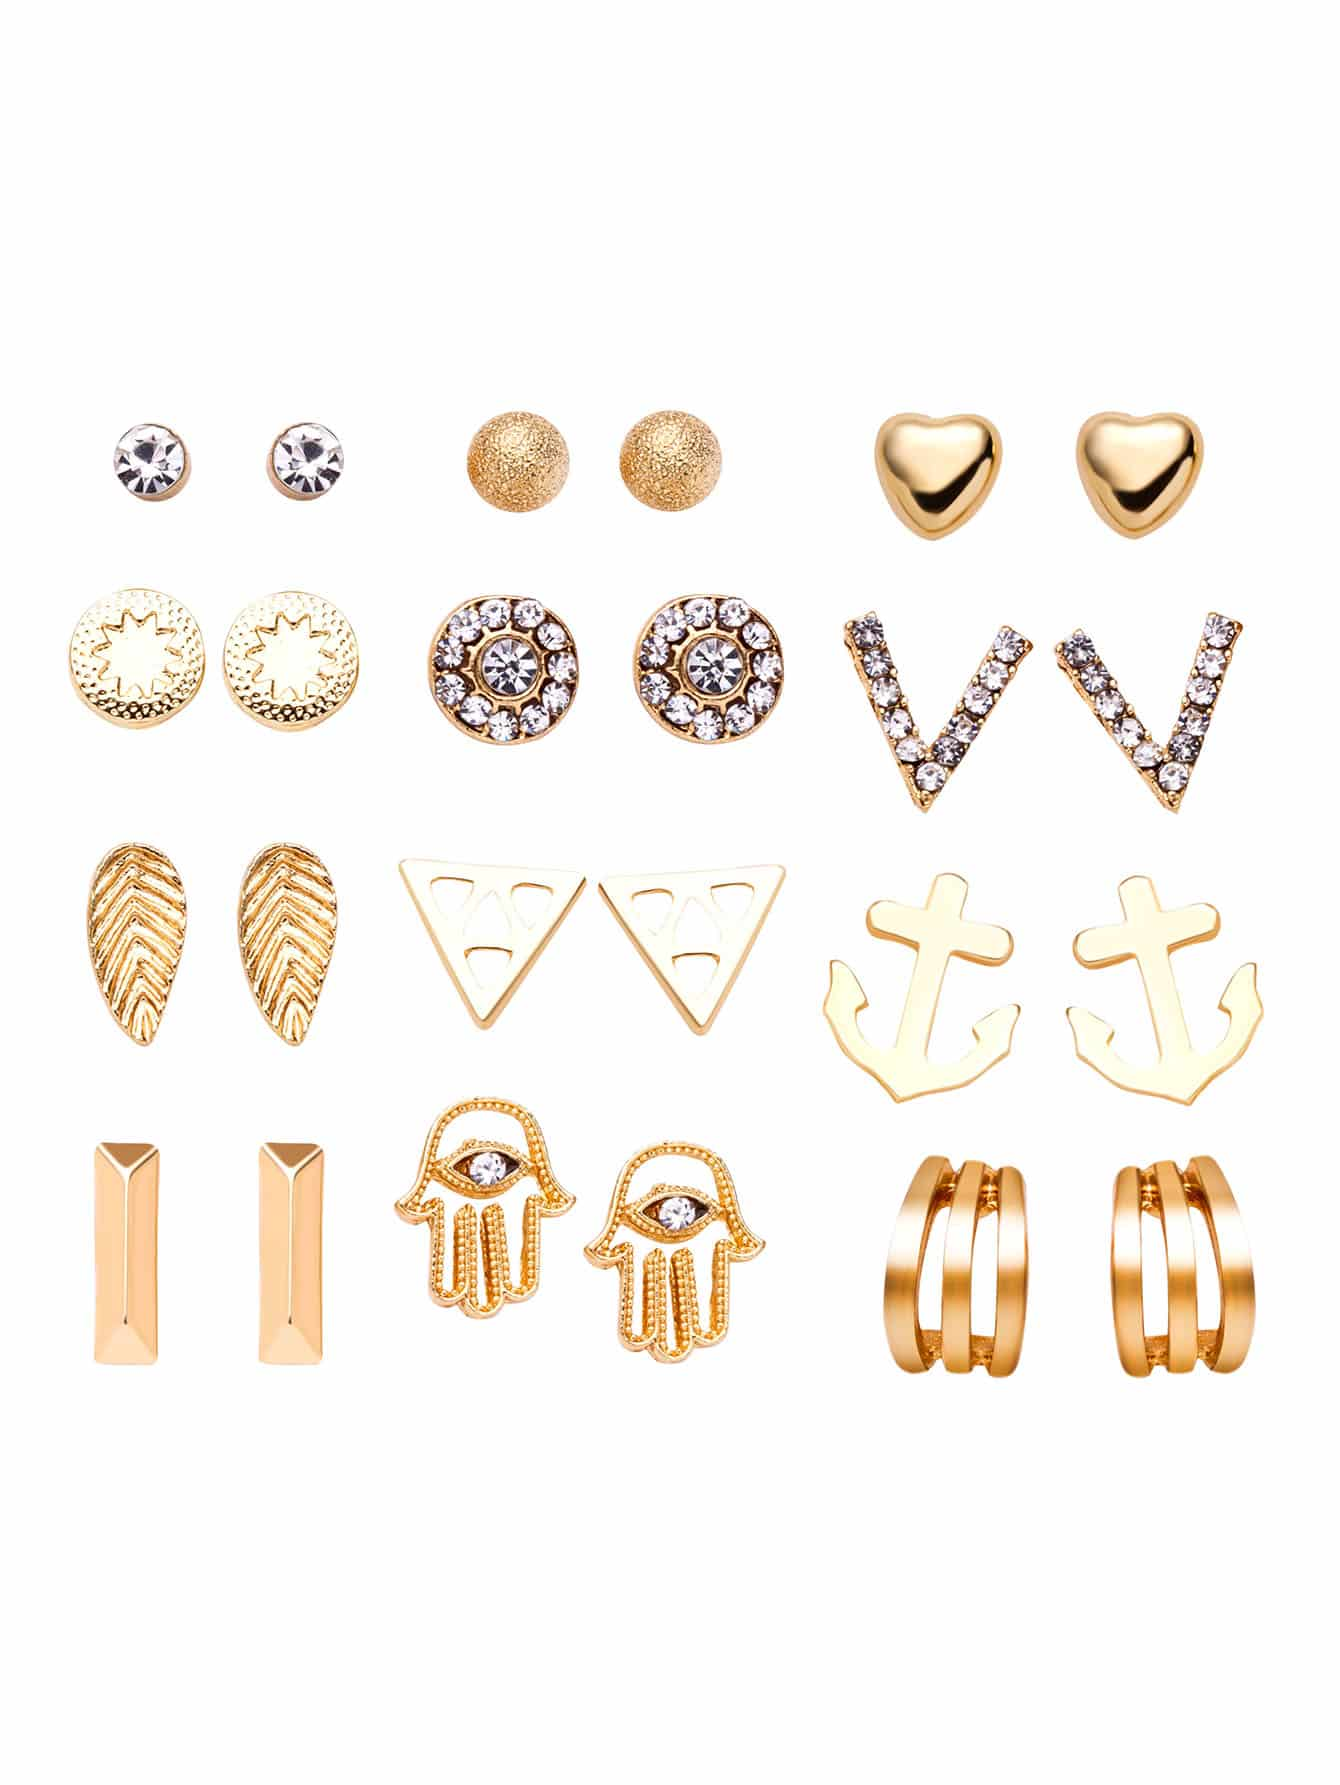 Gold Plated Rhinestone Multi Shape Stud Earrings Set 2015 cheapest barebone mini pc computer nano j1800 with 3g sim function dual nics